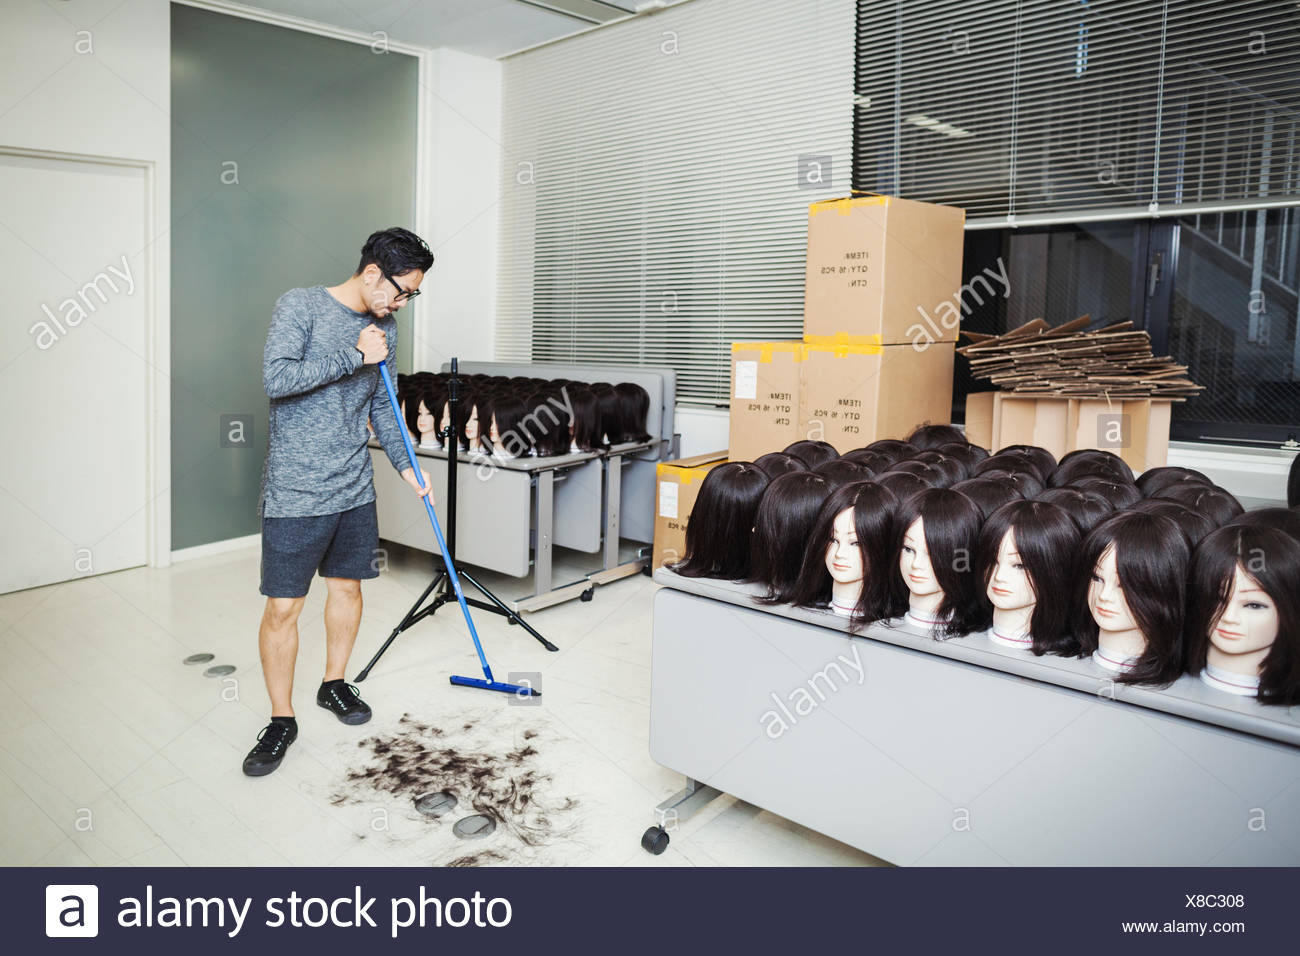 Bearded man wearing glasses standing indoors, sweeping hair on floor, large group of mannequin heads with brown wigs on tables. - Stock Image